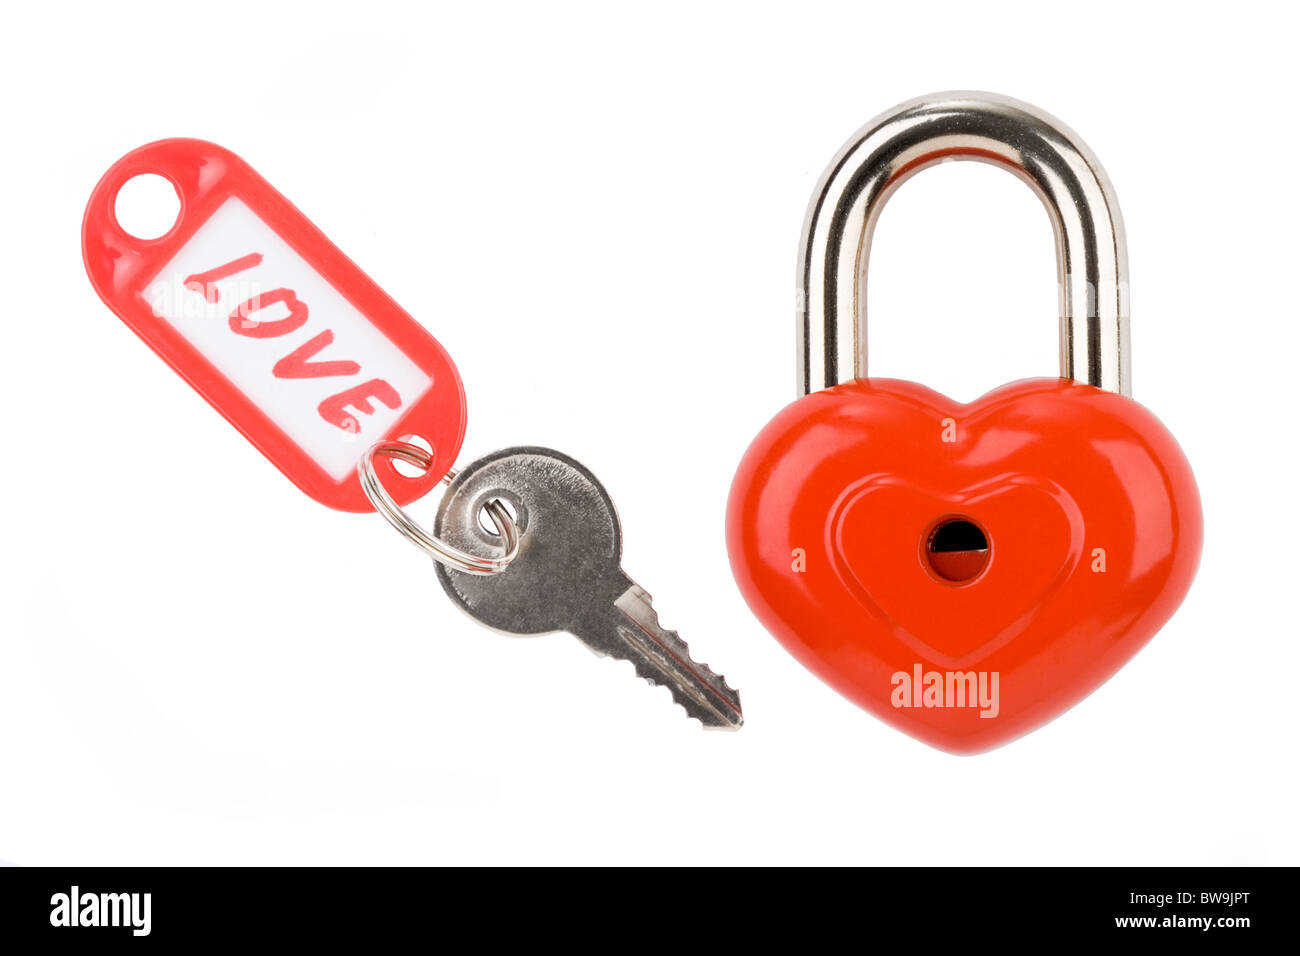 Photo of padlock and key with love label on a white background Stock Photo